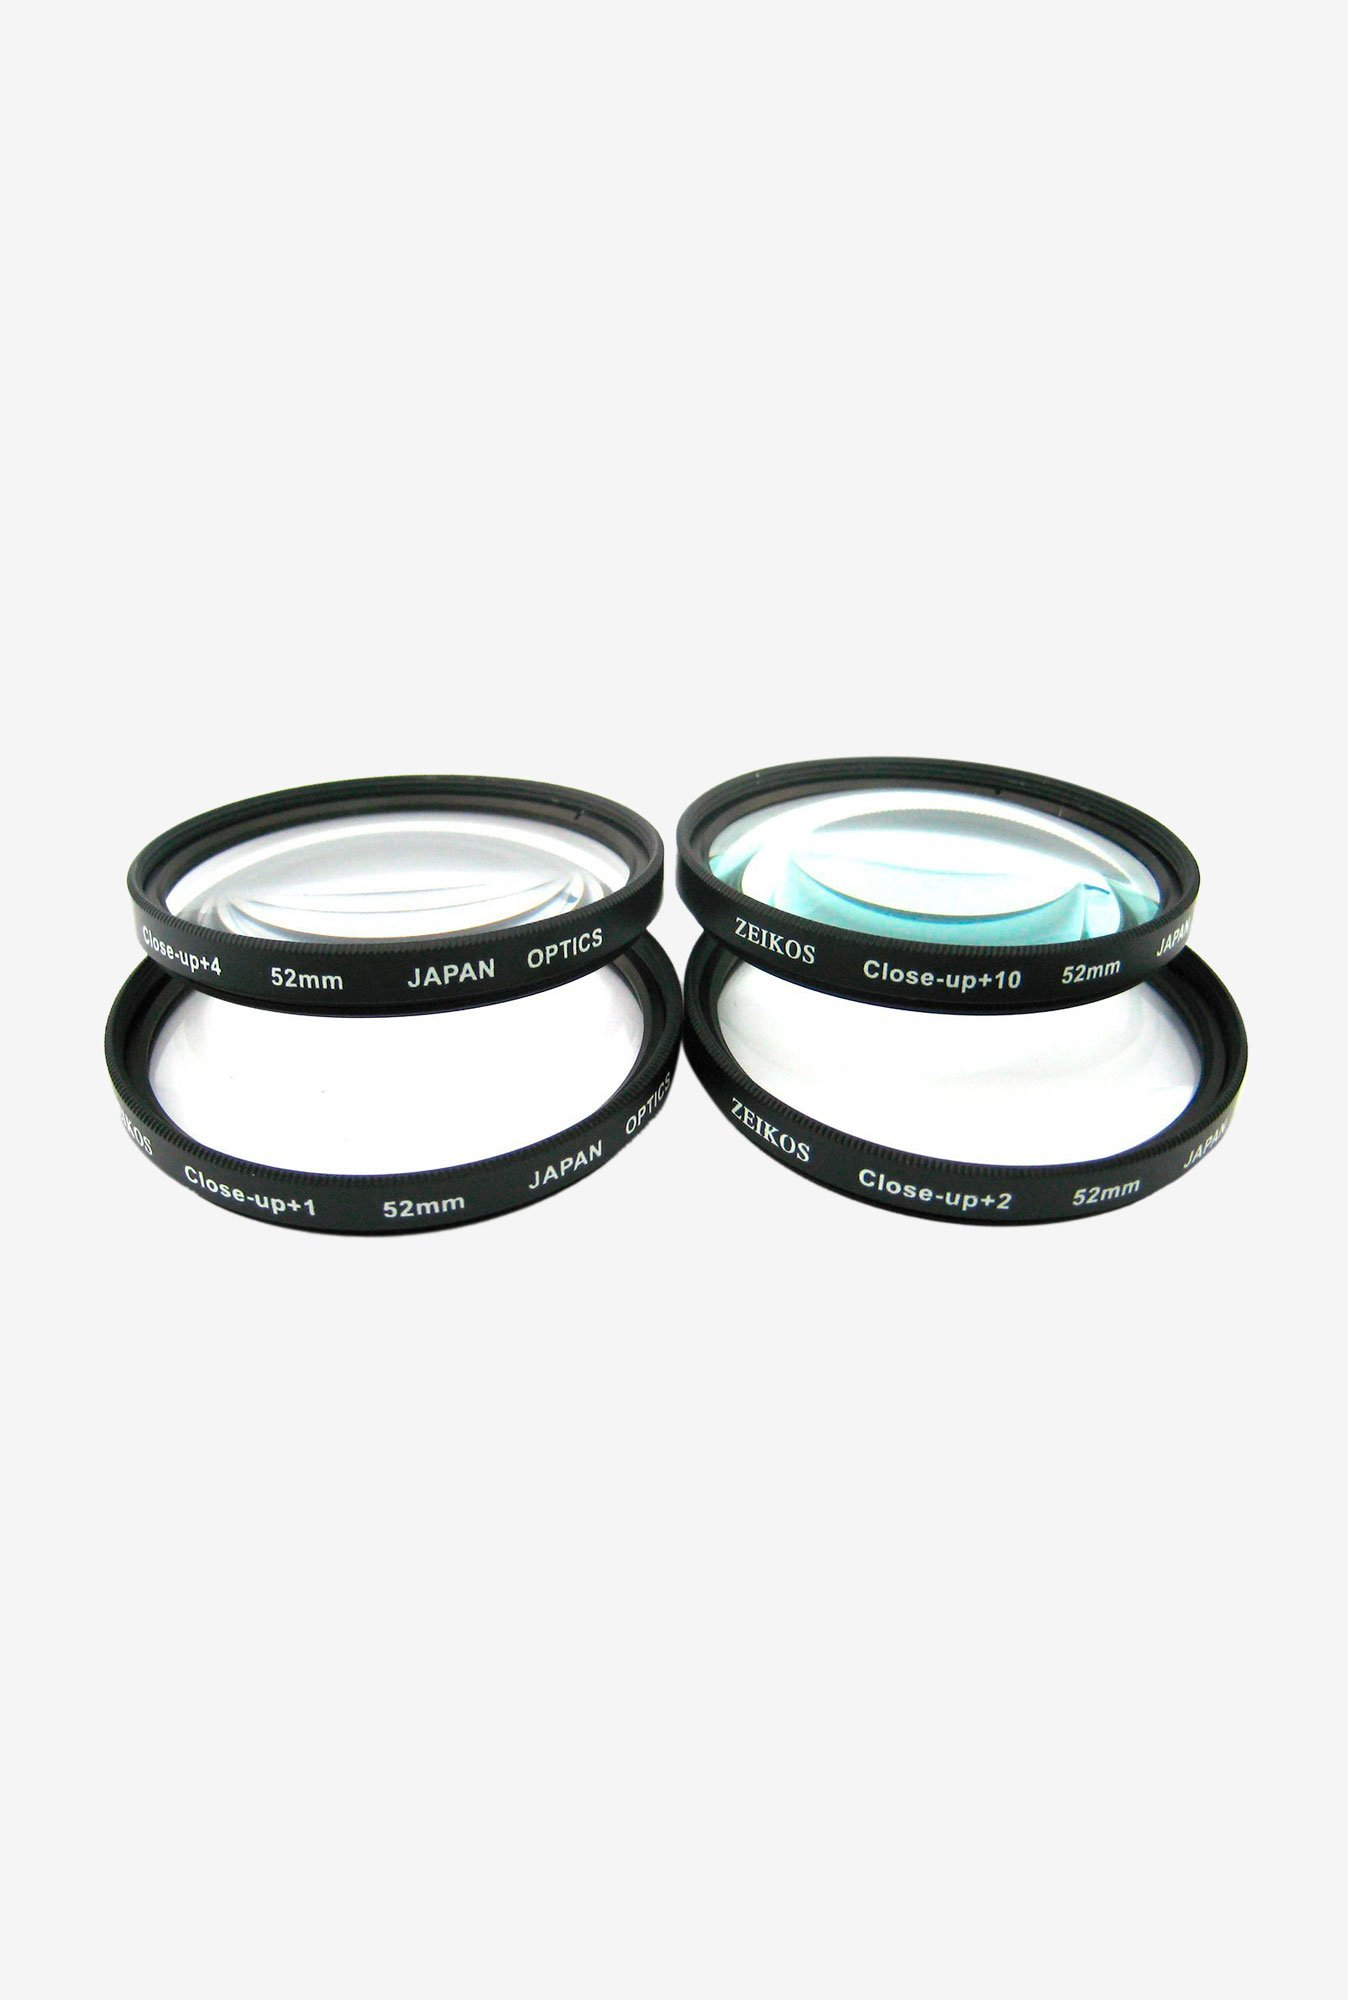 Zeikos 52mm ZE-CU452 Close up Filter Set (4 Piece)